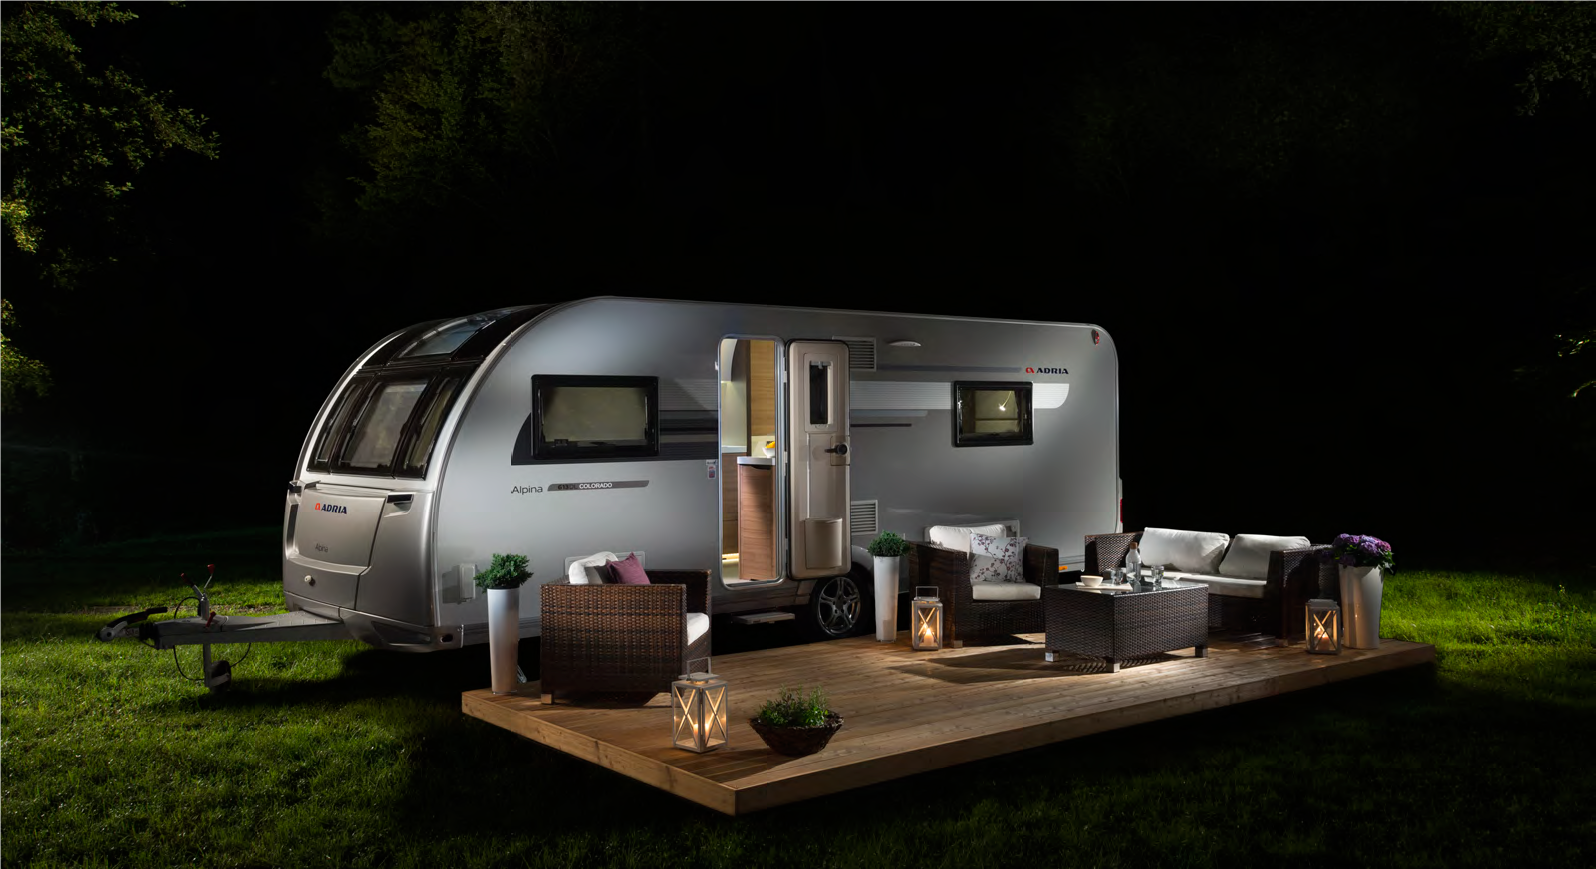 The New Adria Alpina Adopts Adria S Stylish And Modern I Shaped Exterior Design Exclusive To The Uk There Is A Stunning Ne Caravans For Sale Alpina Caravans